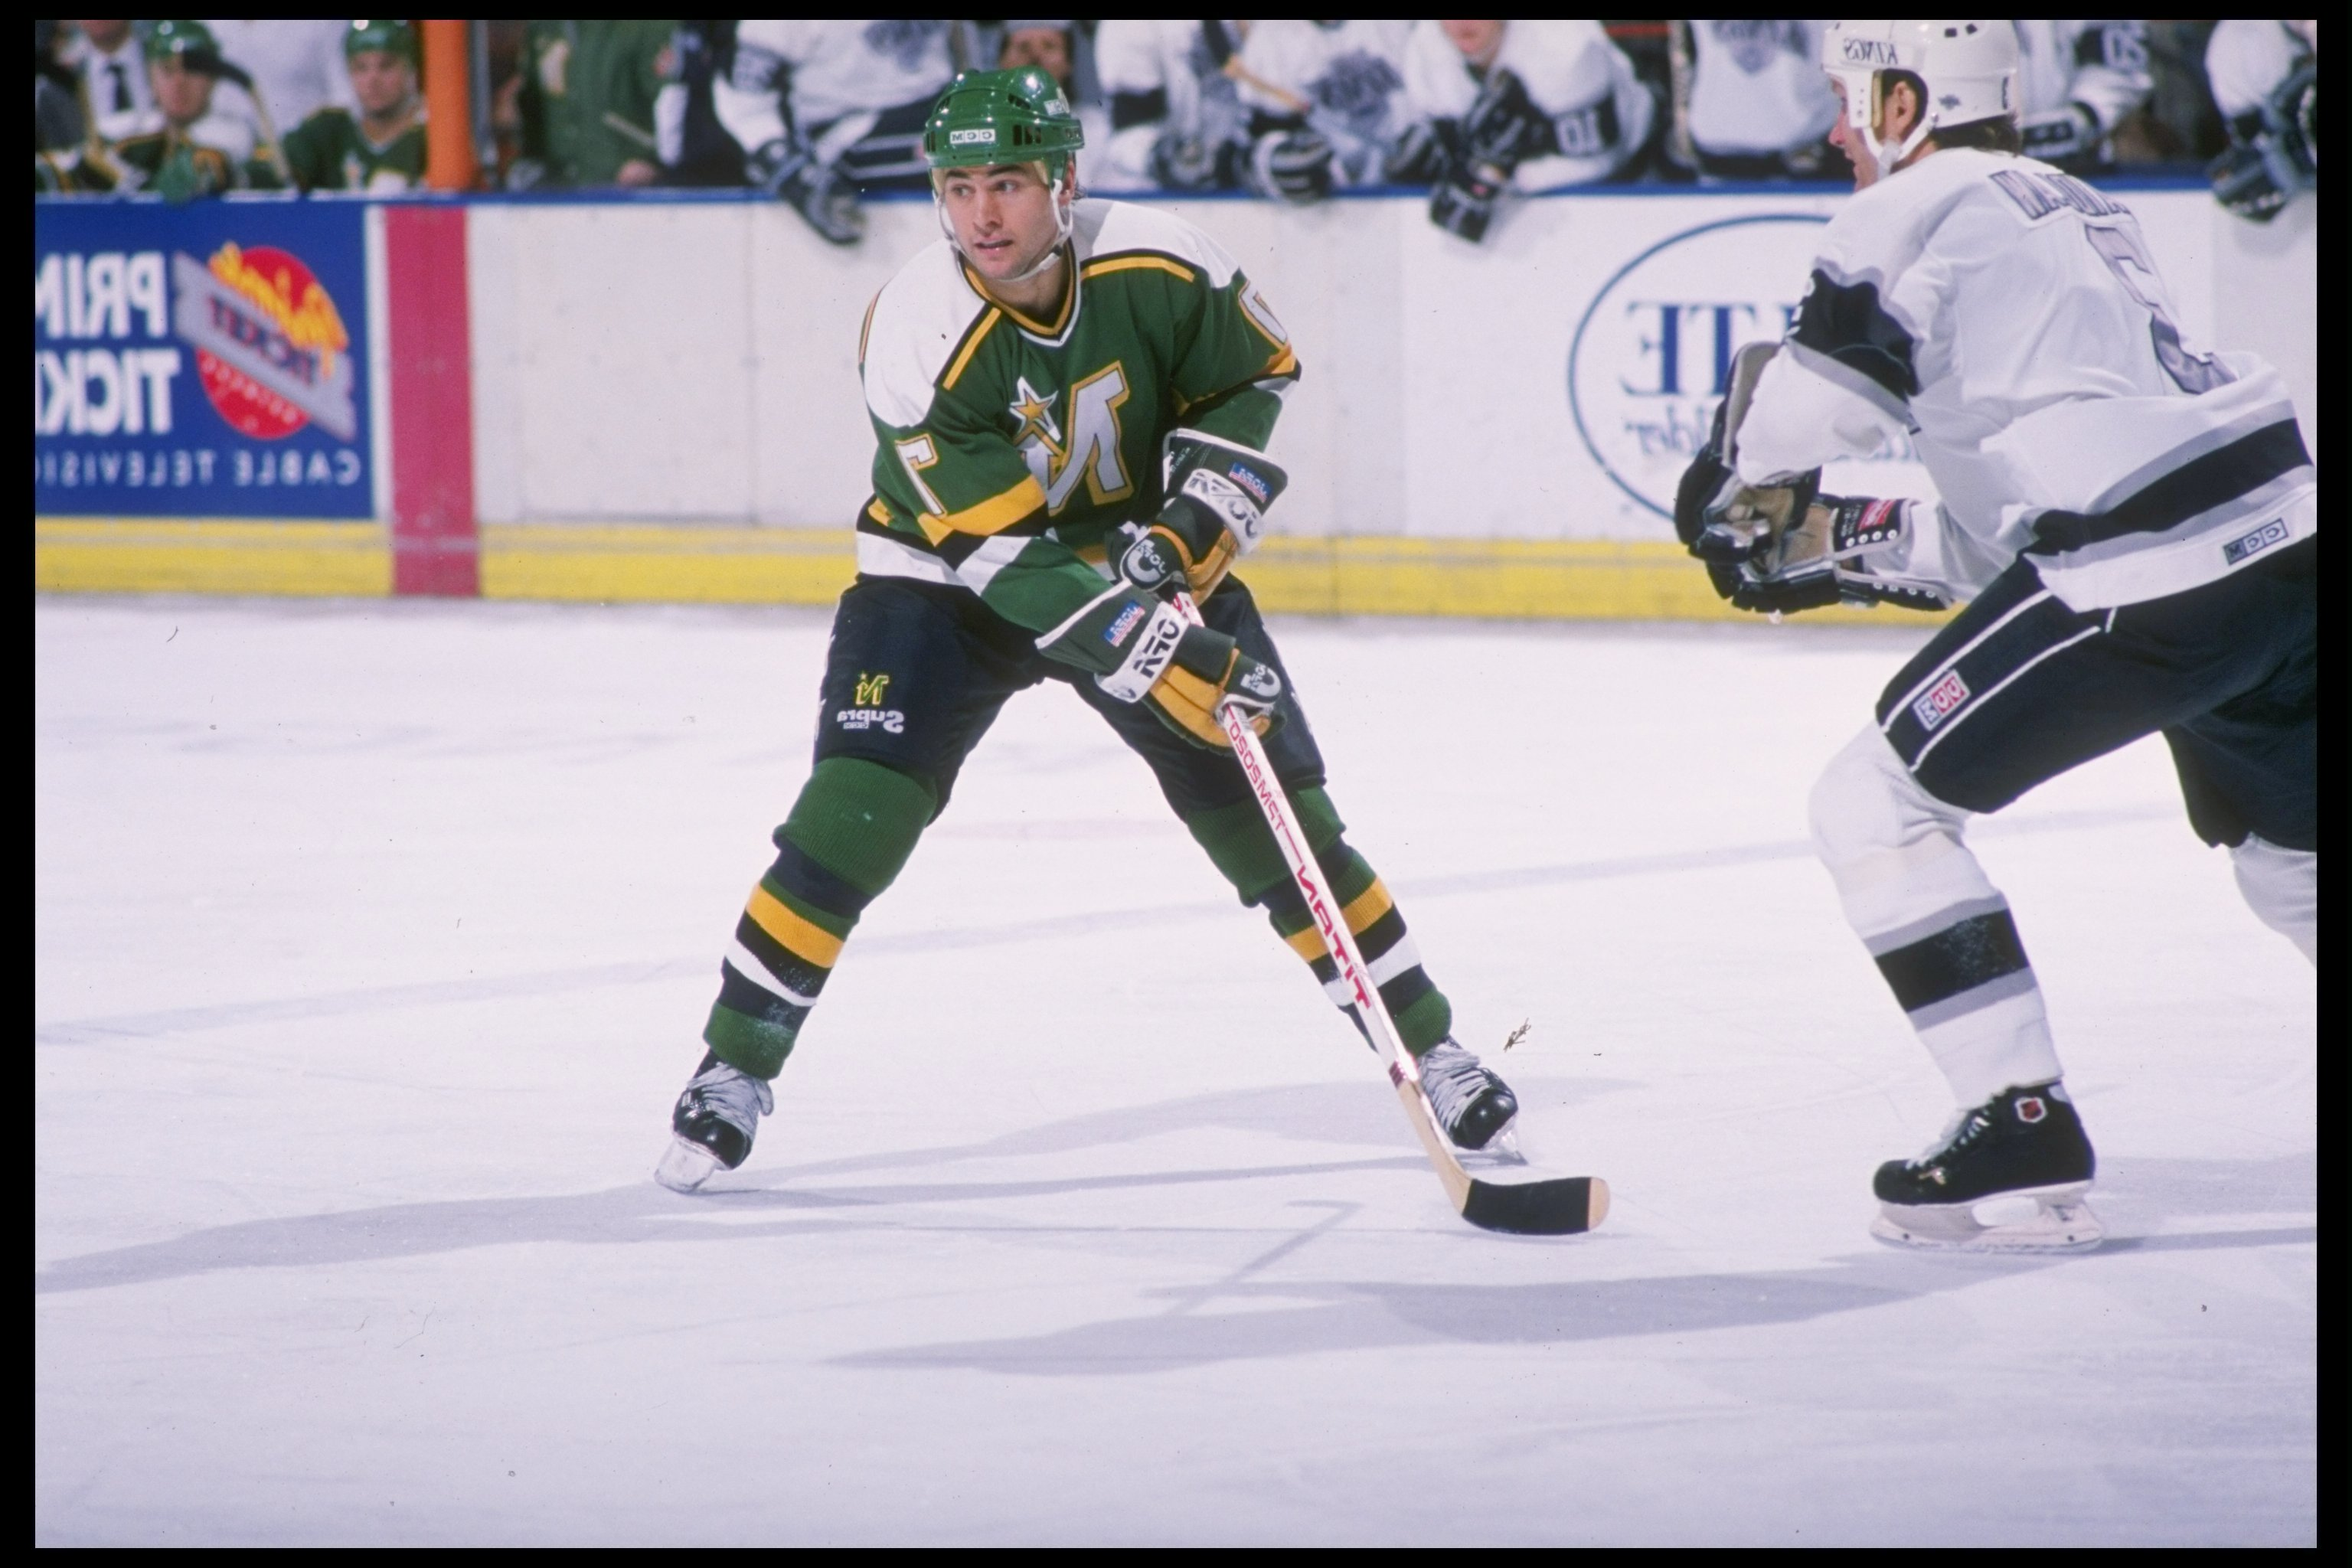 1989:  Neal Broten of the Minnesota Northstars in action during the Northstars versus Los Angeles Kings match at the Great Western Forum in Inglewood, California. Mandatory Credit: Mike Powell  /Allsport